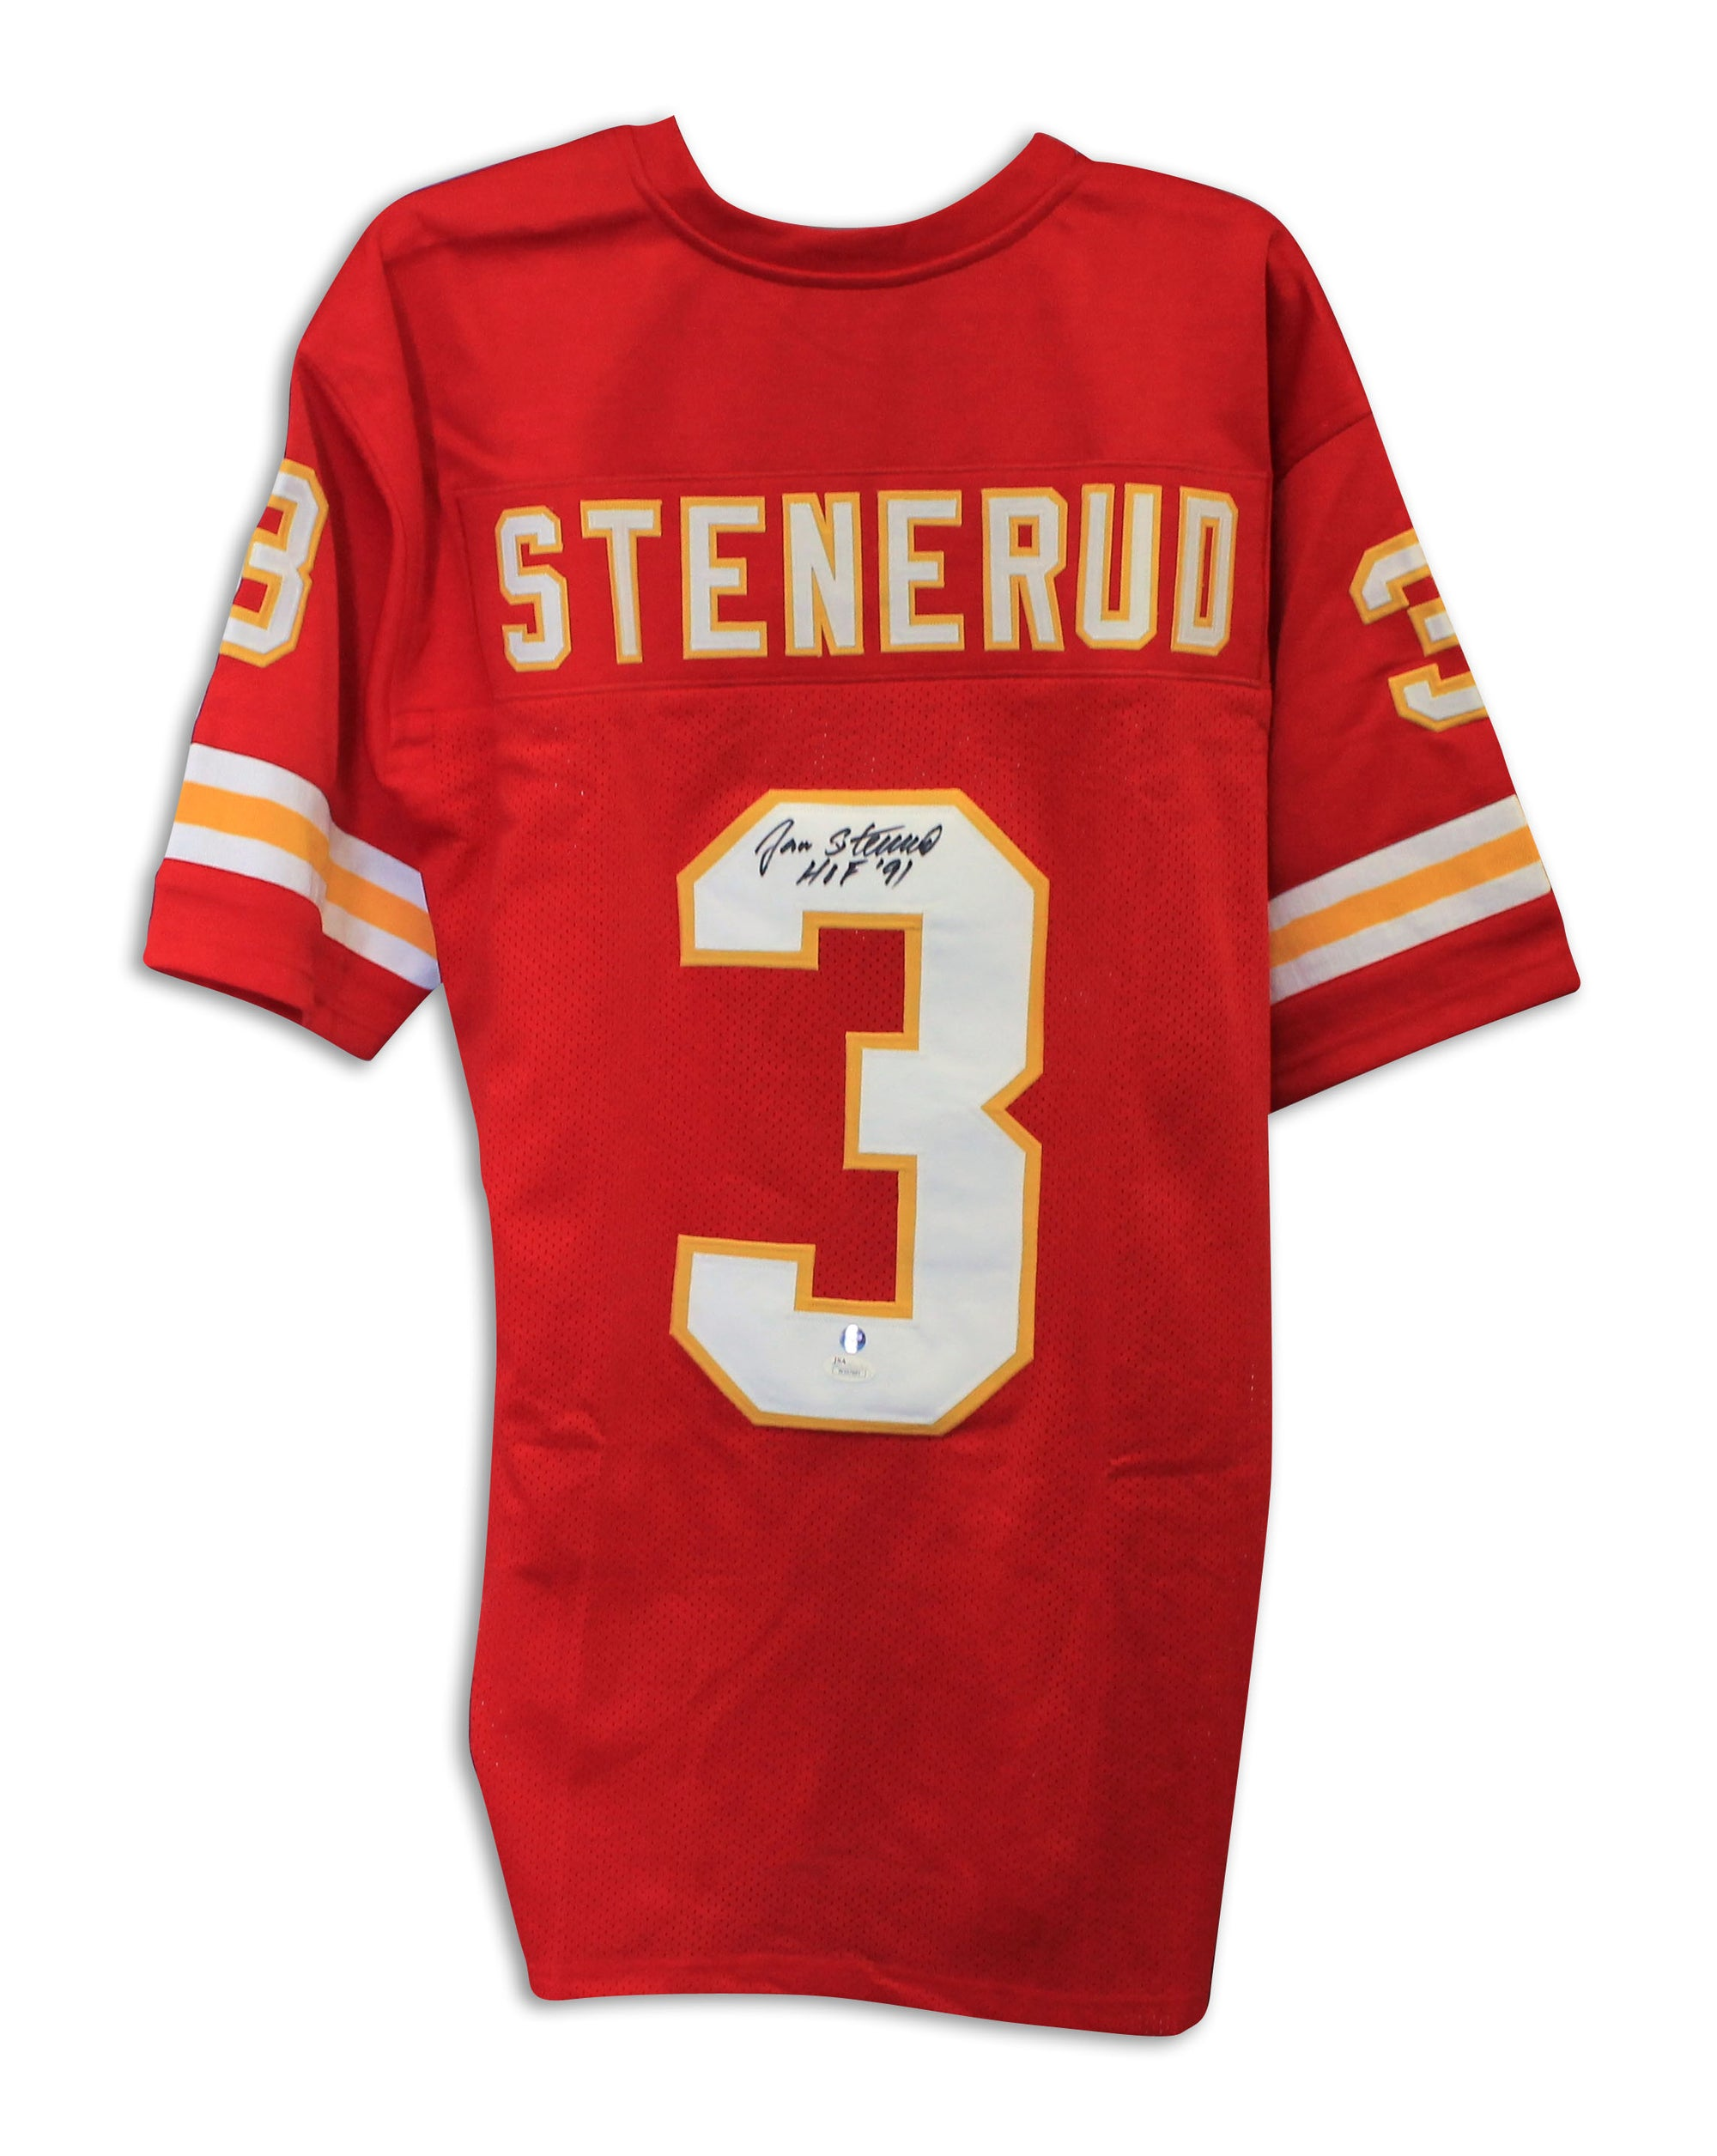 hot sales f7a29 c1f94 Jan Stenerud Kansas City Chiefs Autographed Red Throwback Jersey Inscribed